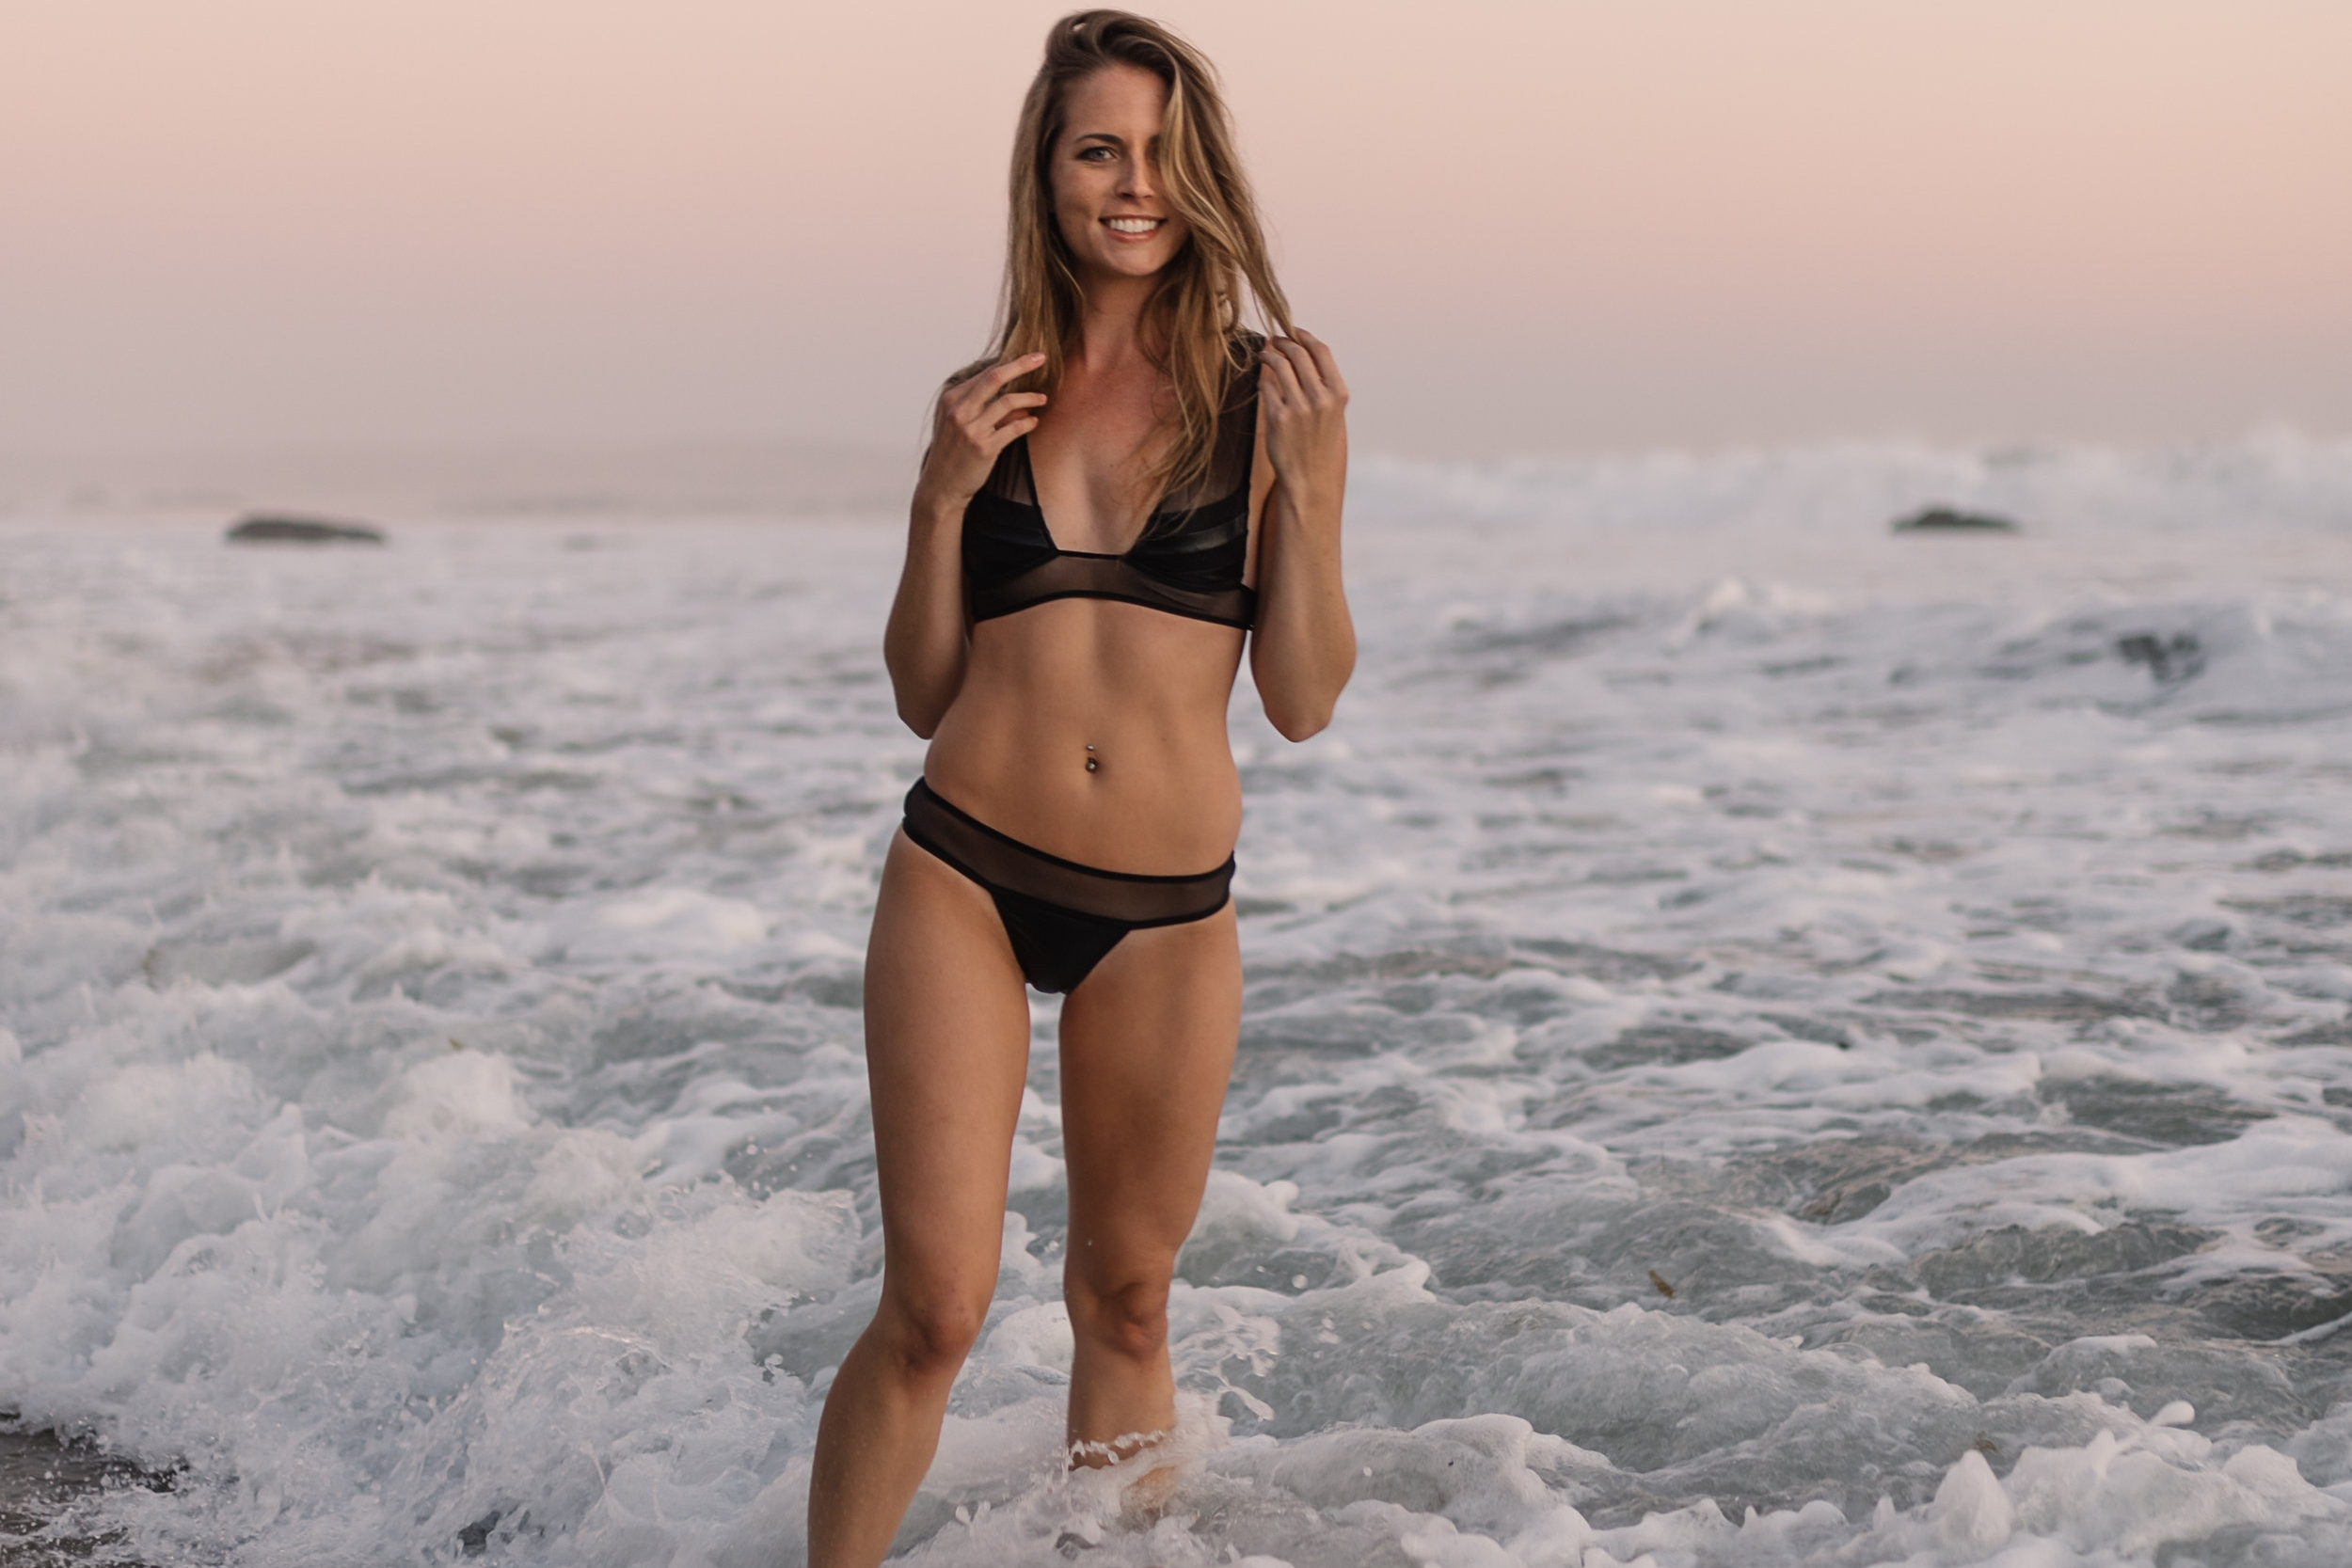 Lindsey in LA - One of our most favorite regular Bandits Babes Lindsey Weller travelled to LA to work with Photographer Paolo Artymiak, and we are so so glad that she did